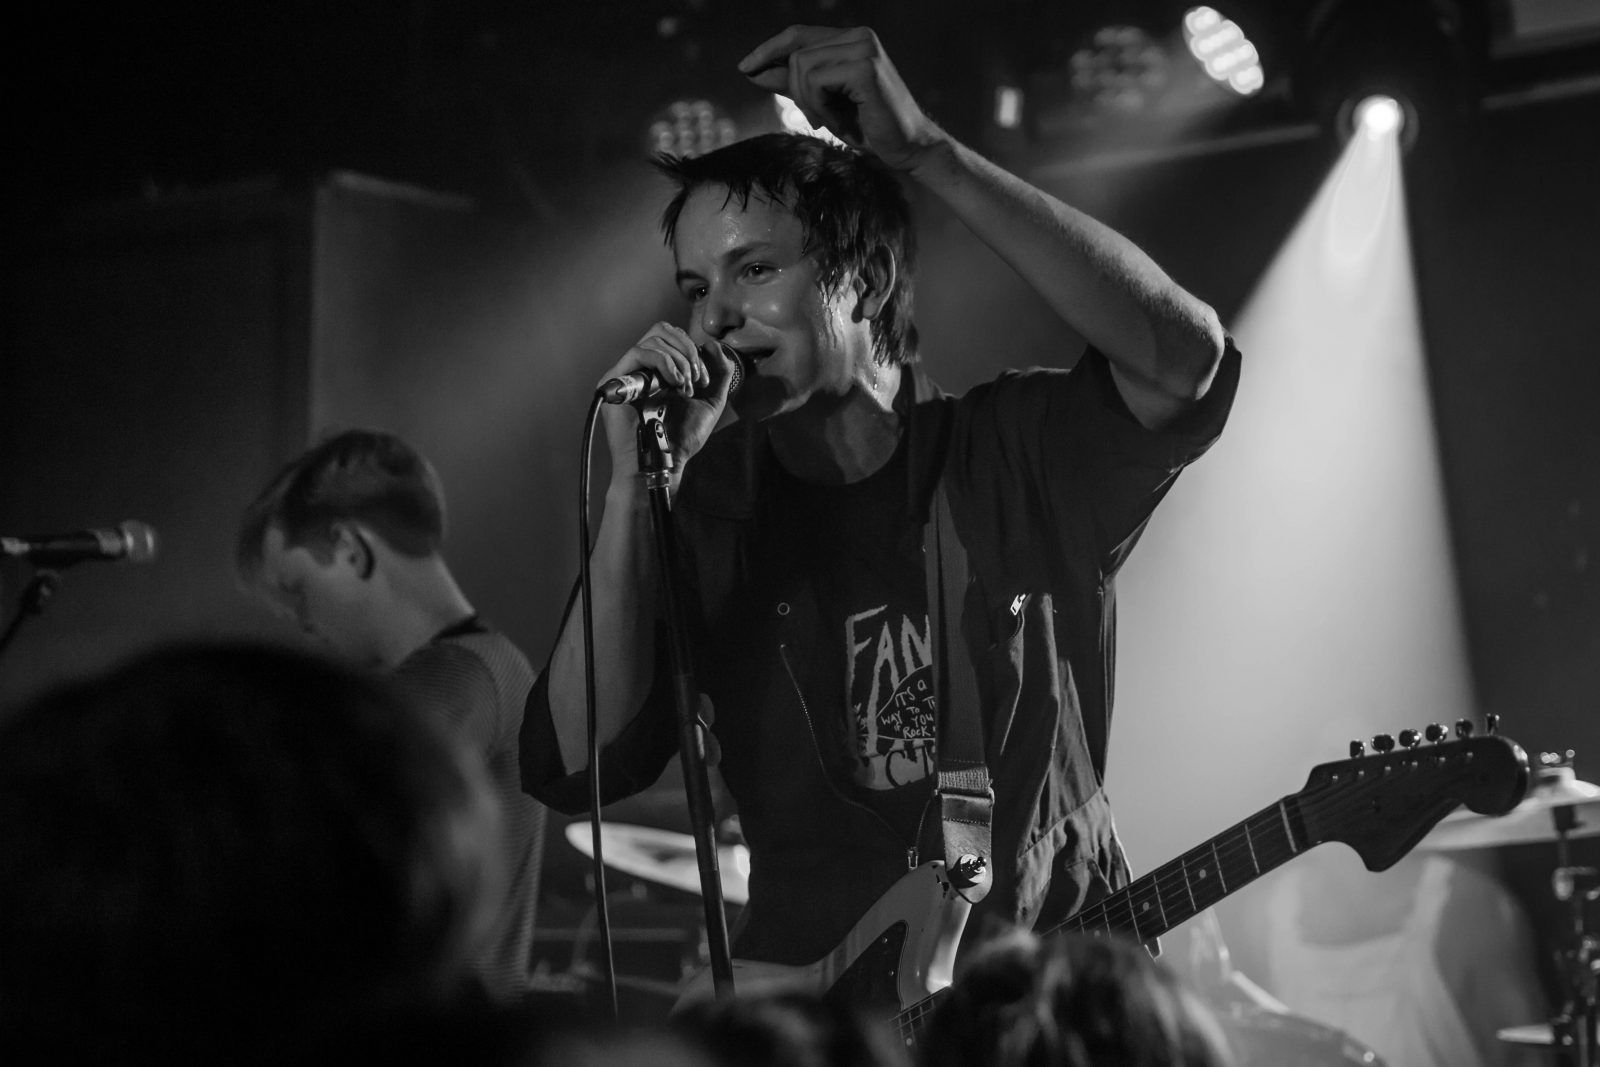 an evening with: Swmrs